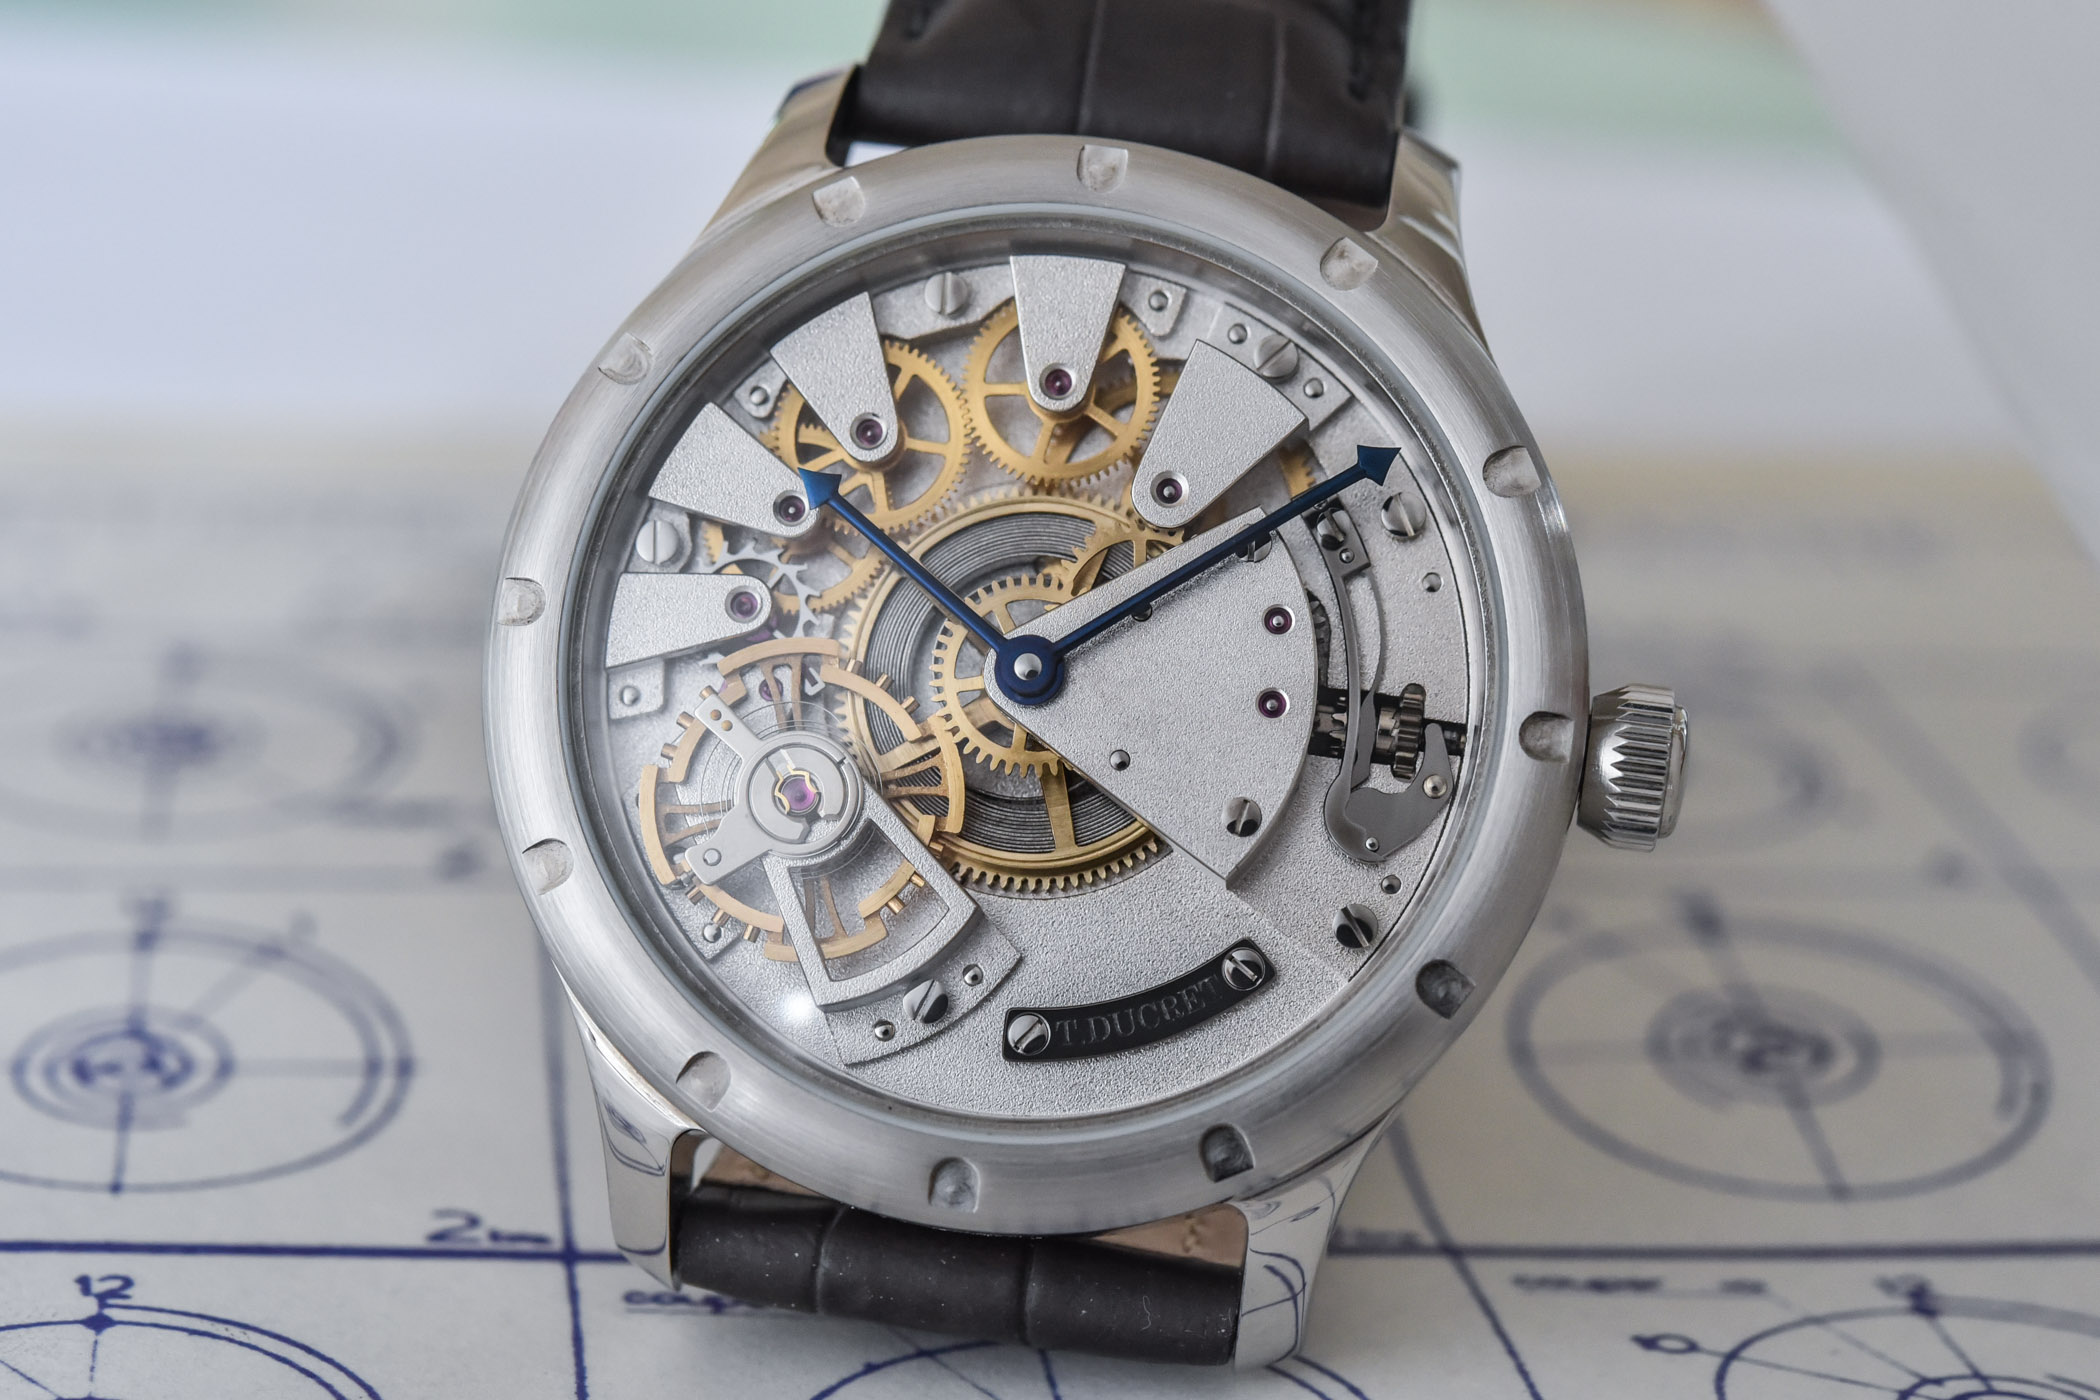 Independent watchmaking - Thierry Ducret first watch